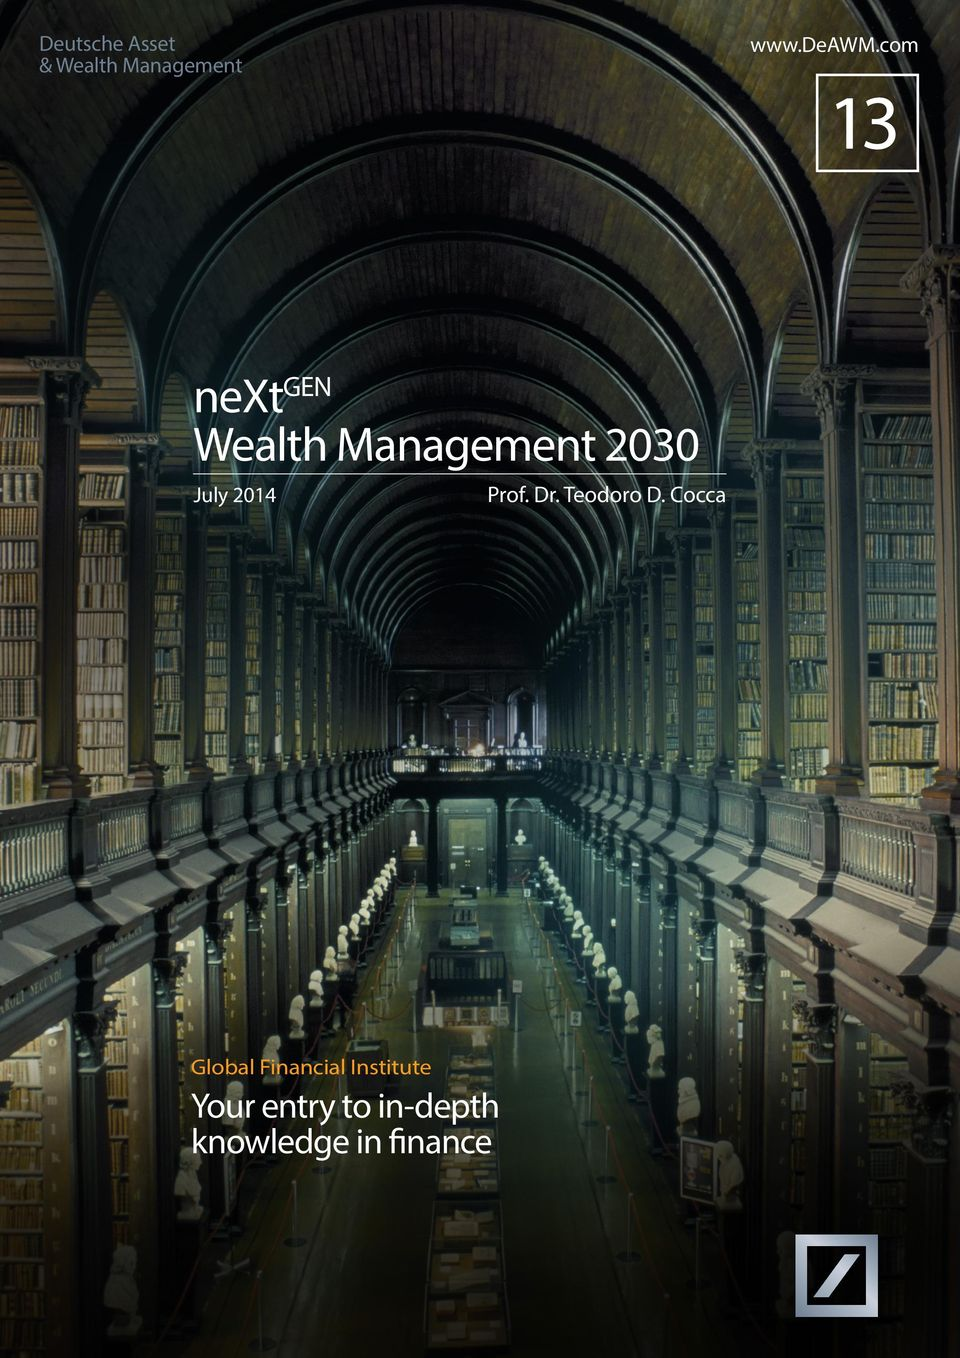 com 13 nextgen Wealth Management 2030